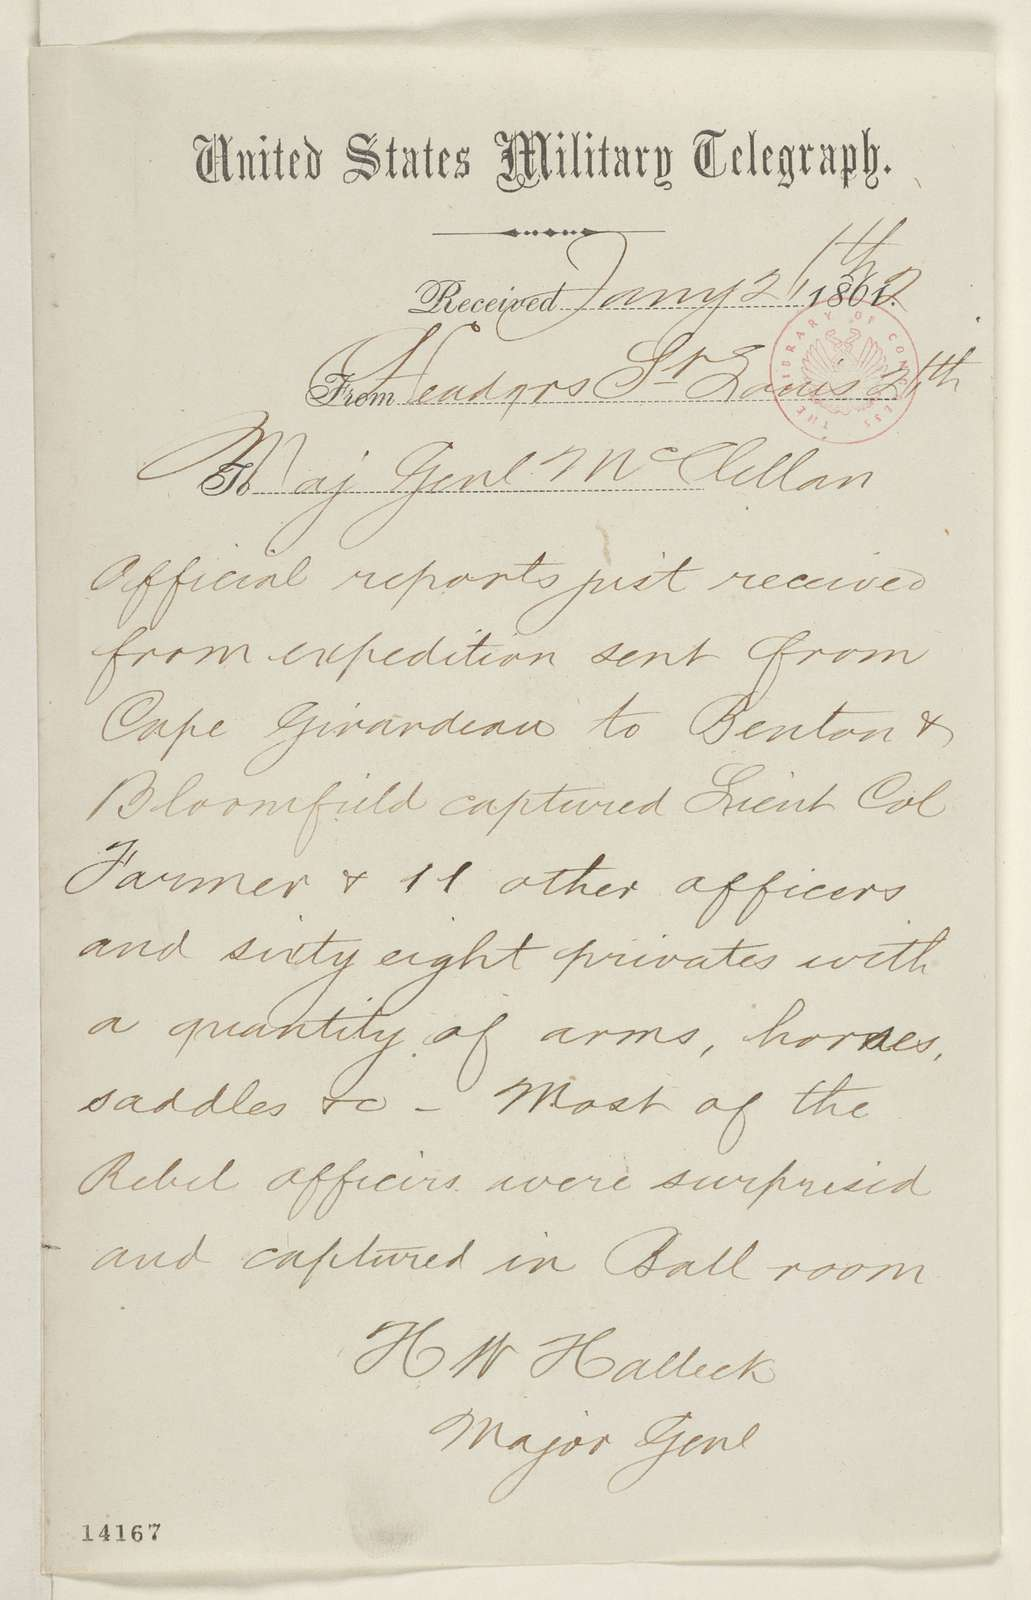 Abraham Lincoln papers: Series 1. General Correspondence. 1833-1916: Henry W. Halleck to George McClellan, Sunday, January 26, 1862 (Telegram regarding military affairs)